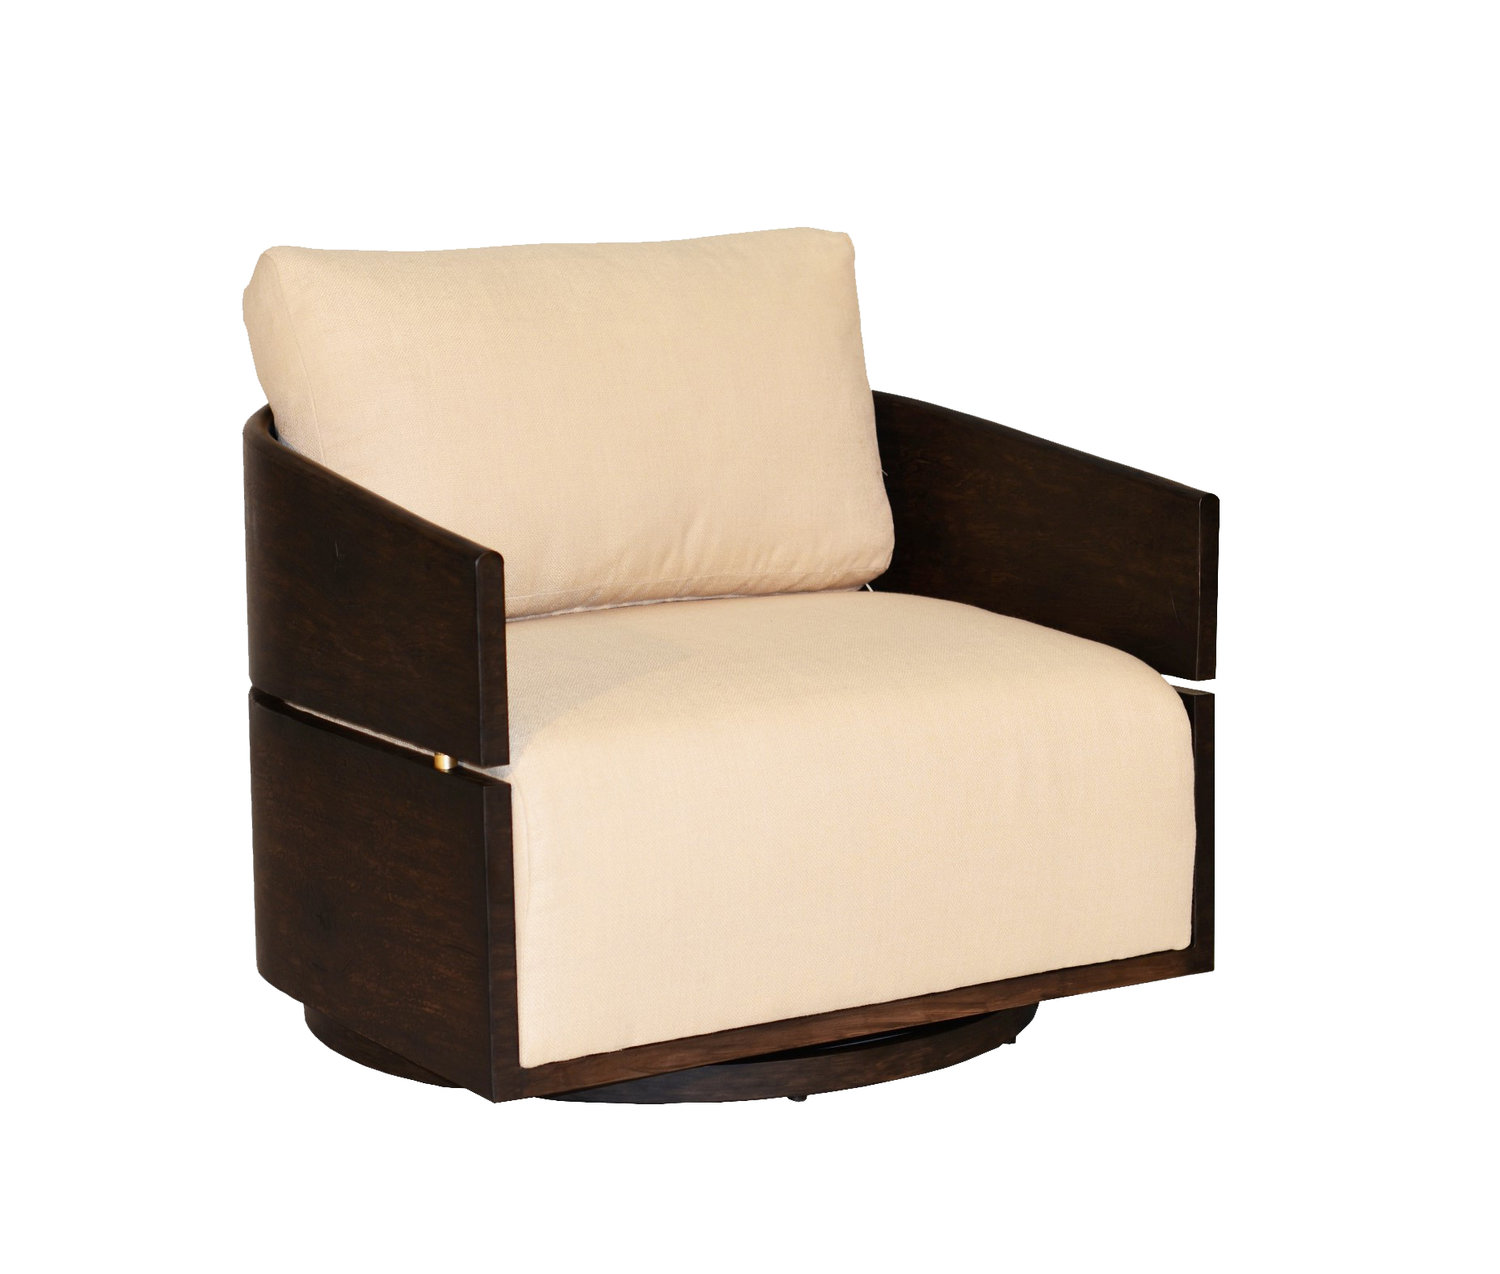 Tribeca Swivel Lounge Chair